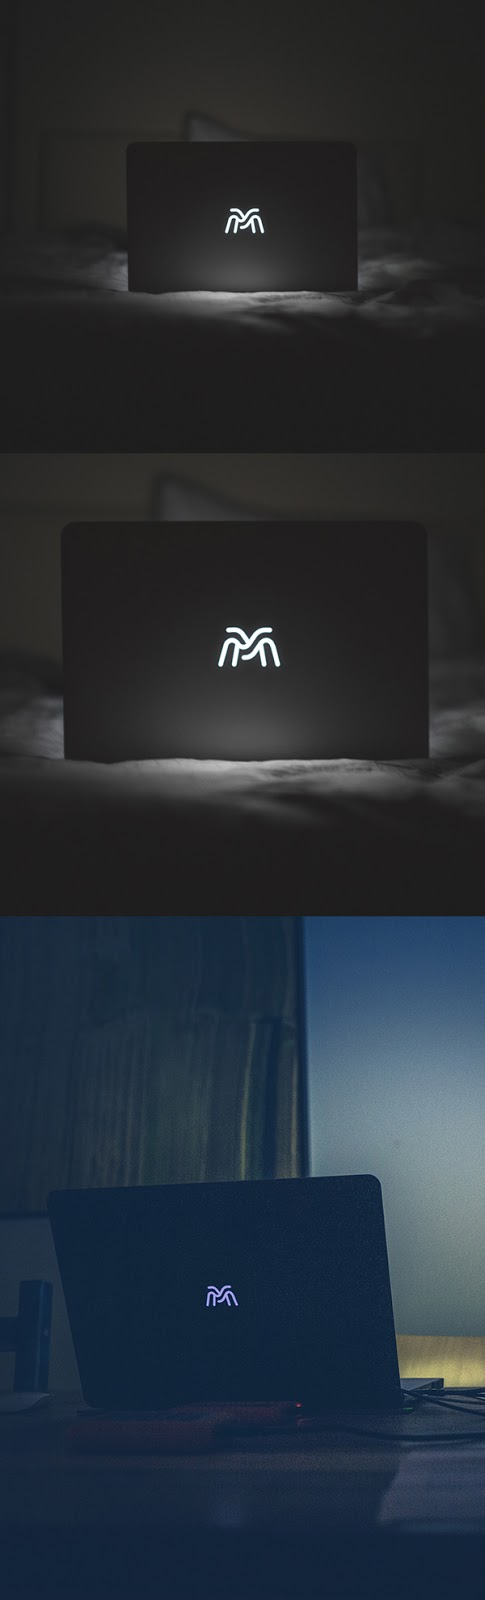 Download Free Mockup PSD 2018 - Free Backlight Macbook Logo Mockup